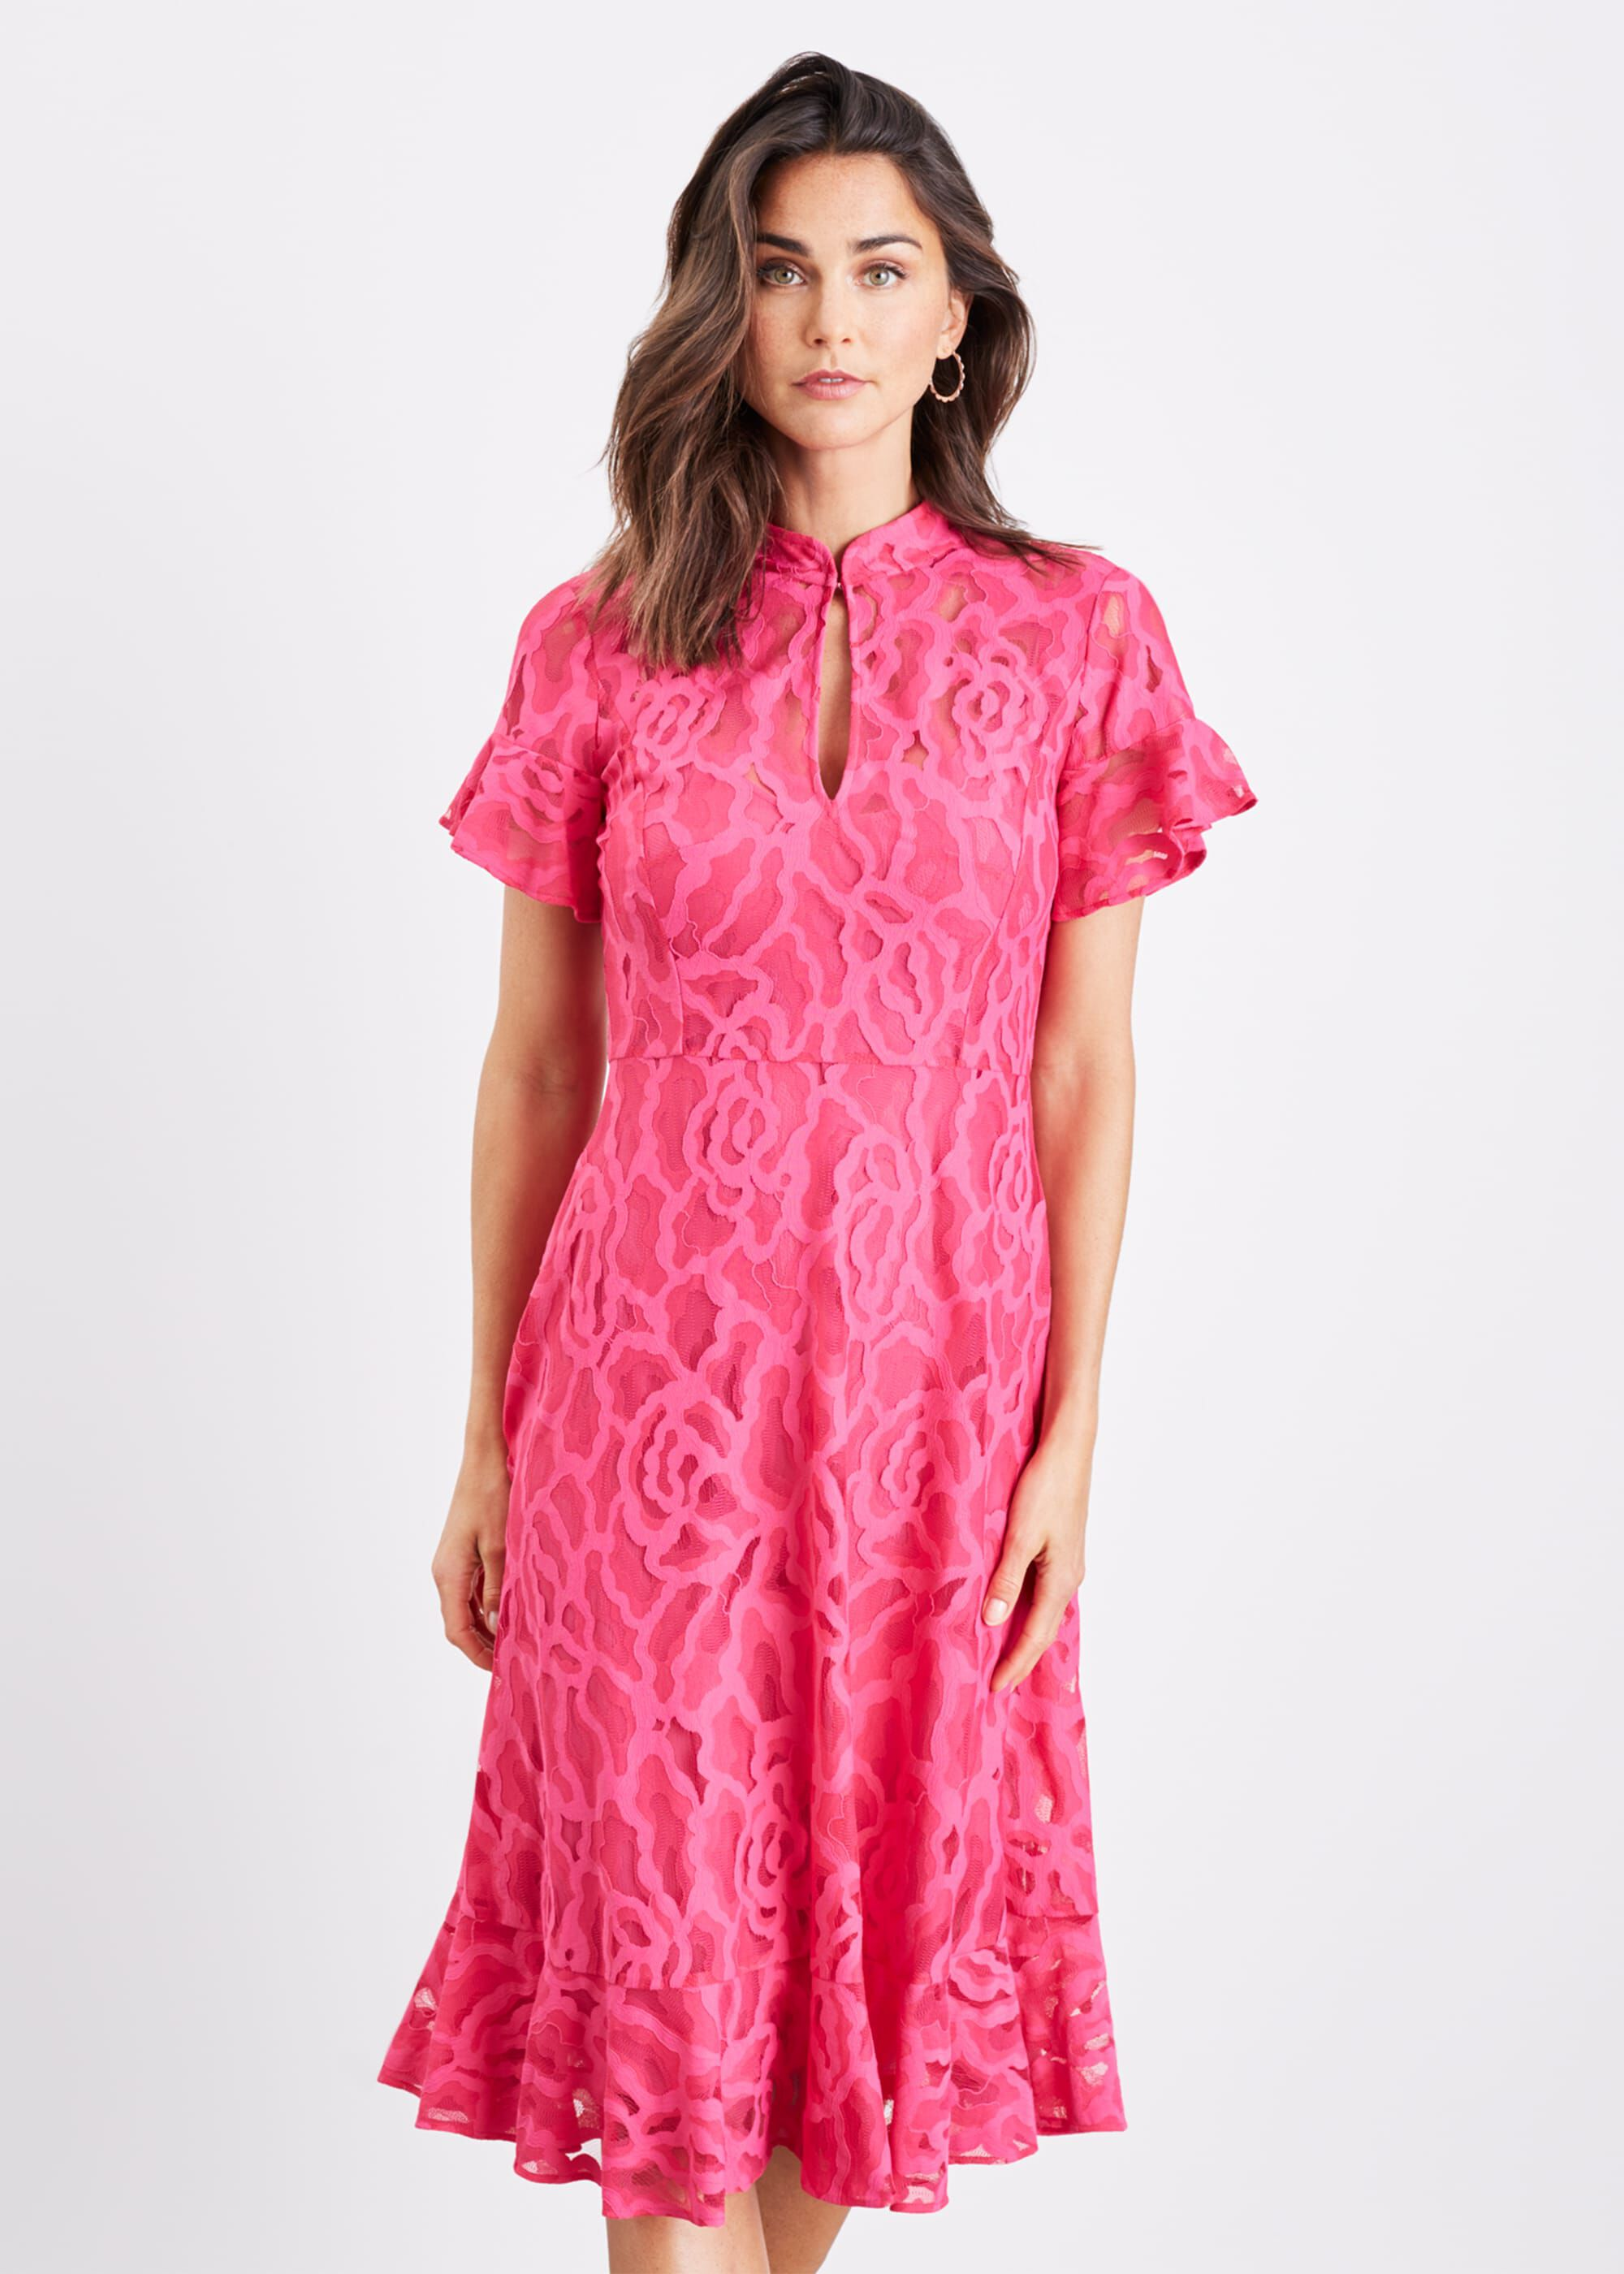 Damsel in a Dress Lulu Floral Lace Dress, Pink, Occasion Dress